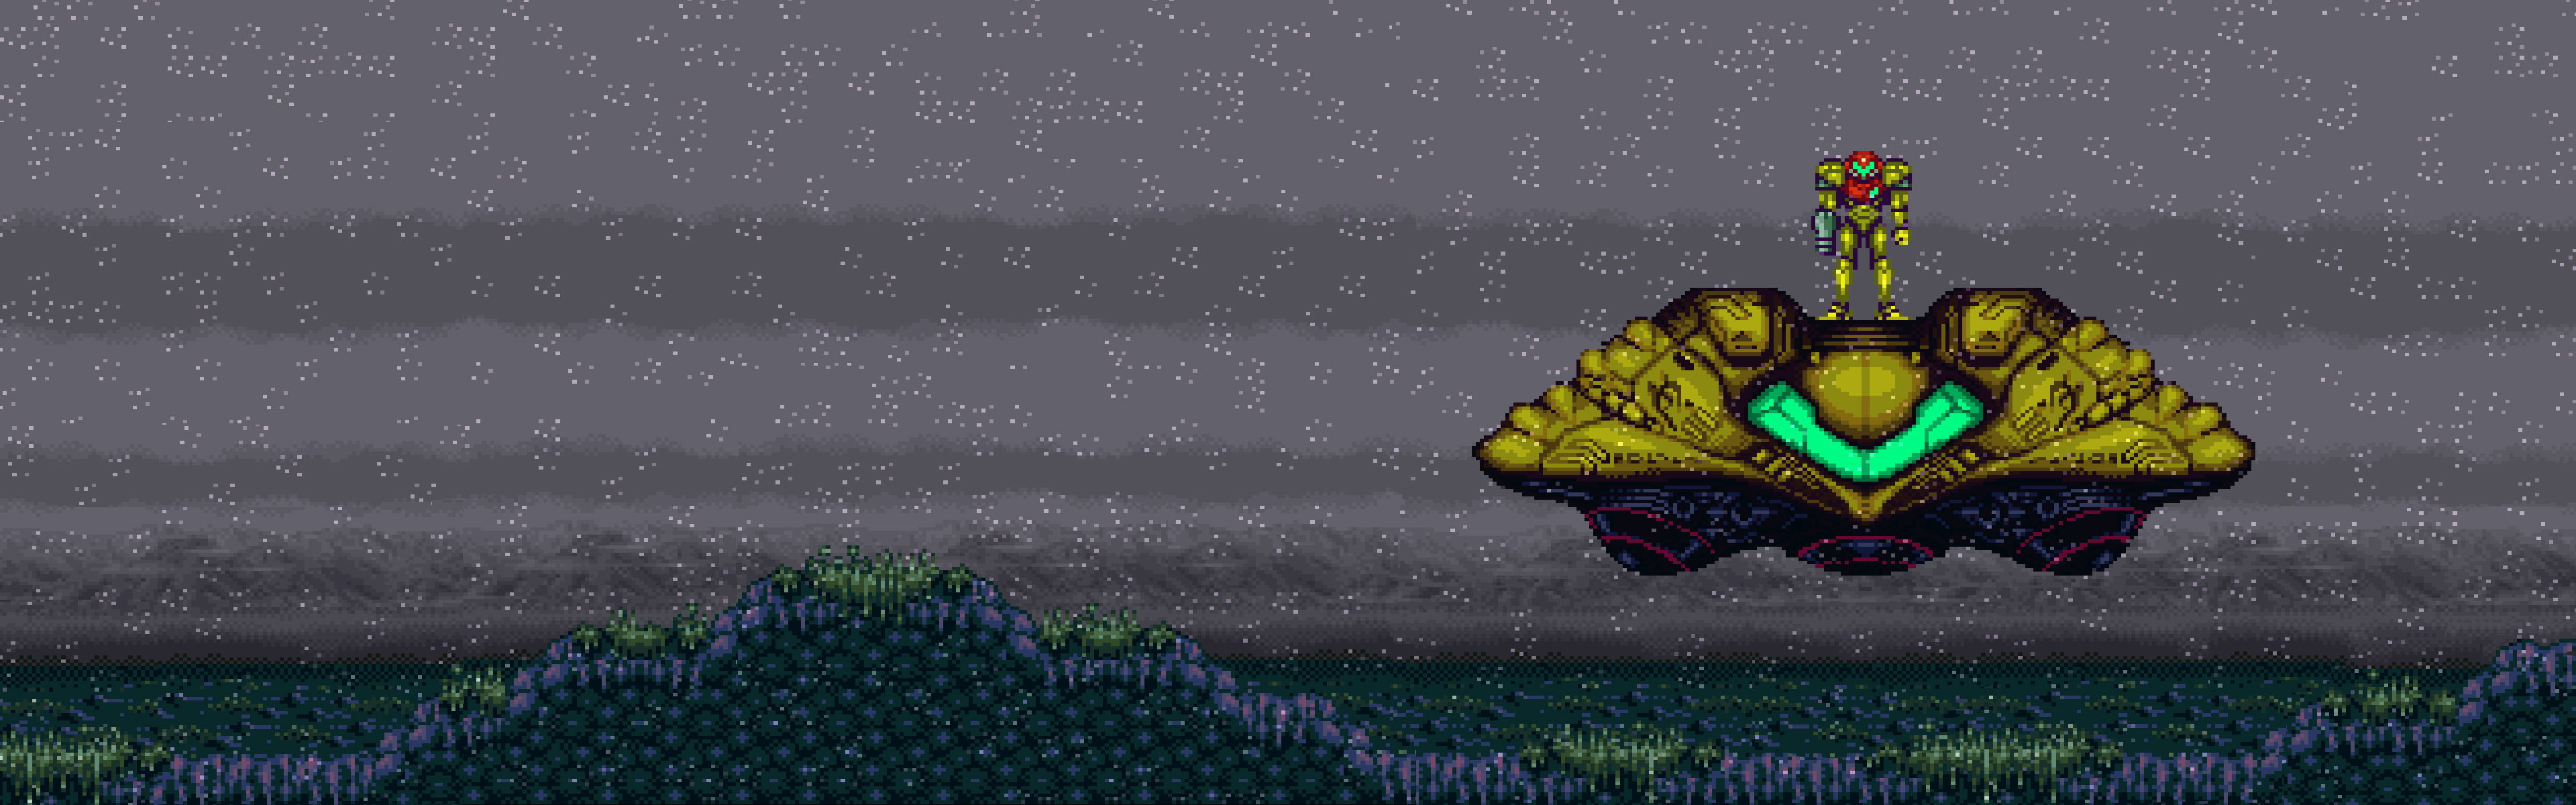 A screencap from the game Super Metroid. Samus Aran lands her spaceship on the surface of the planet Zebes. It is gray and raining. There is no one and nothing else around.